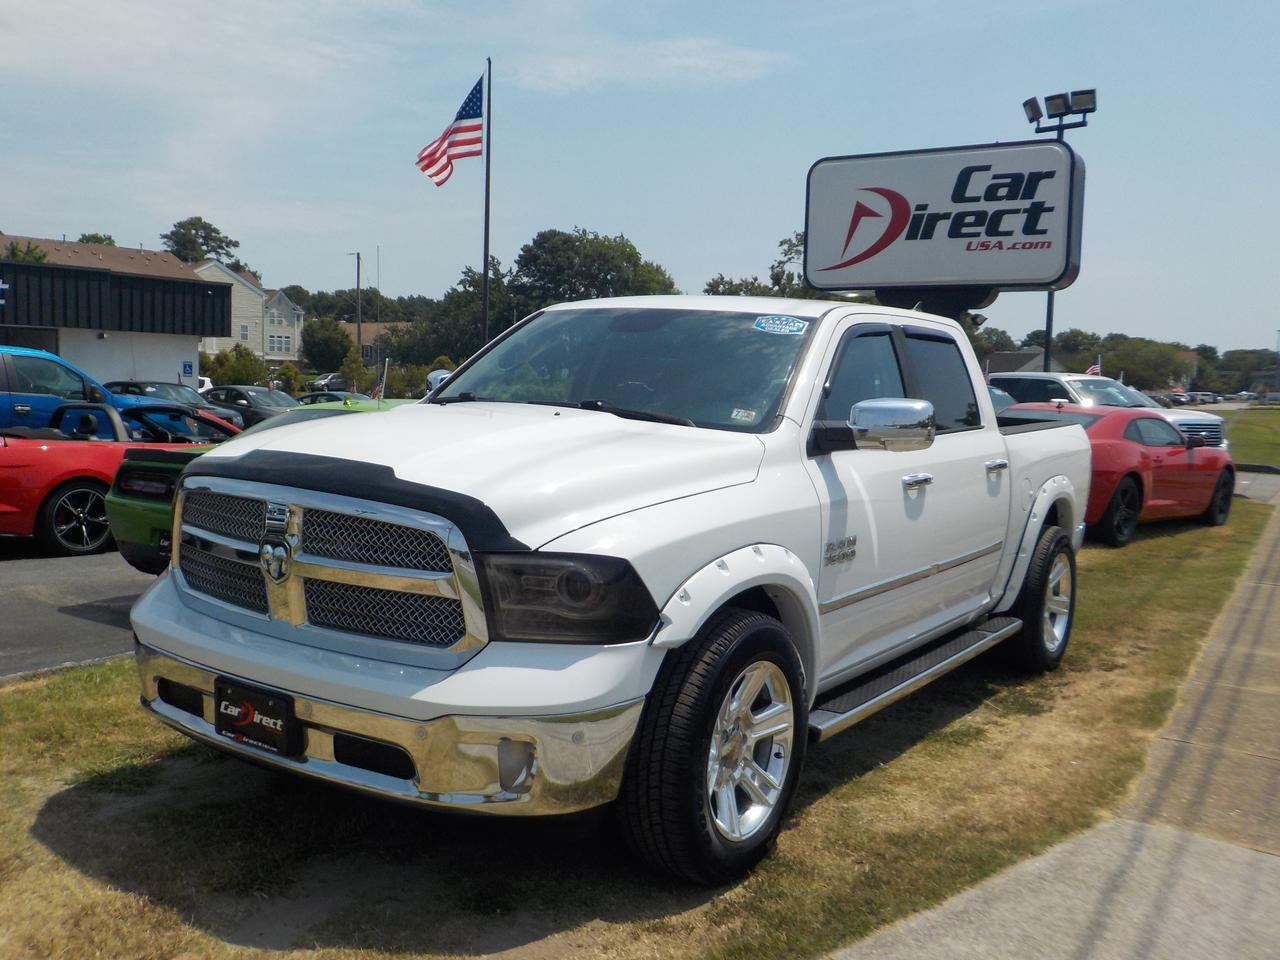 2014 RAM 1500 LONGHORN LIMITED CREW CAB 4X4, RUNNING BOARDS, NAVIGATION, PARKING SENSORS, HEATED & COOLED SEATS! Virginia Beach VA